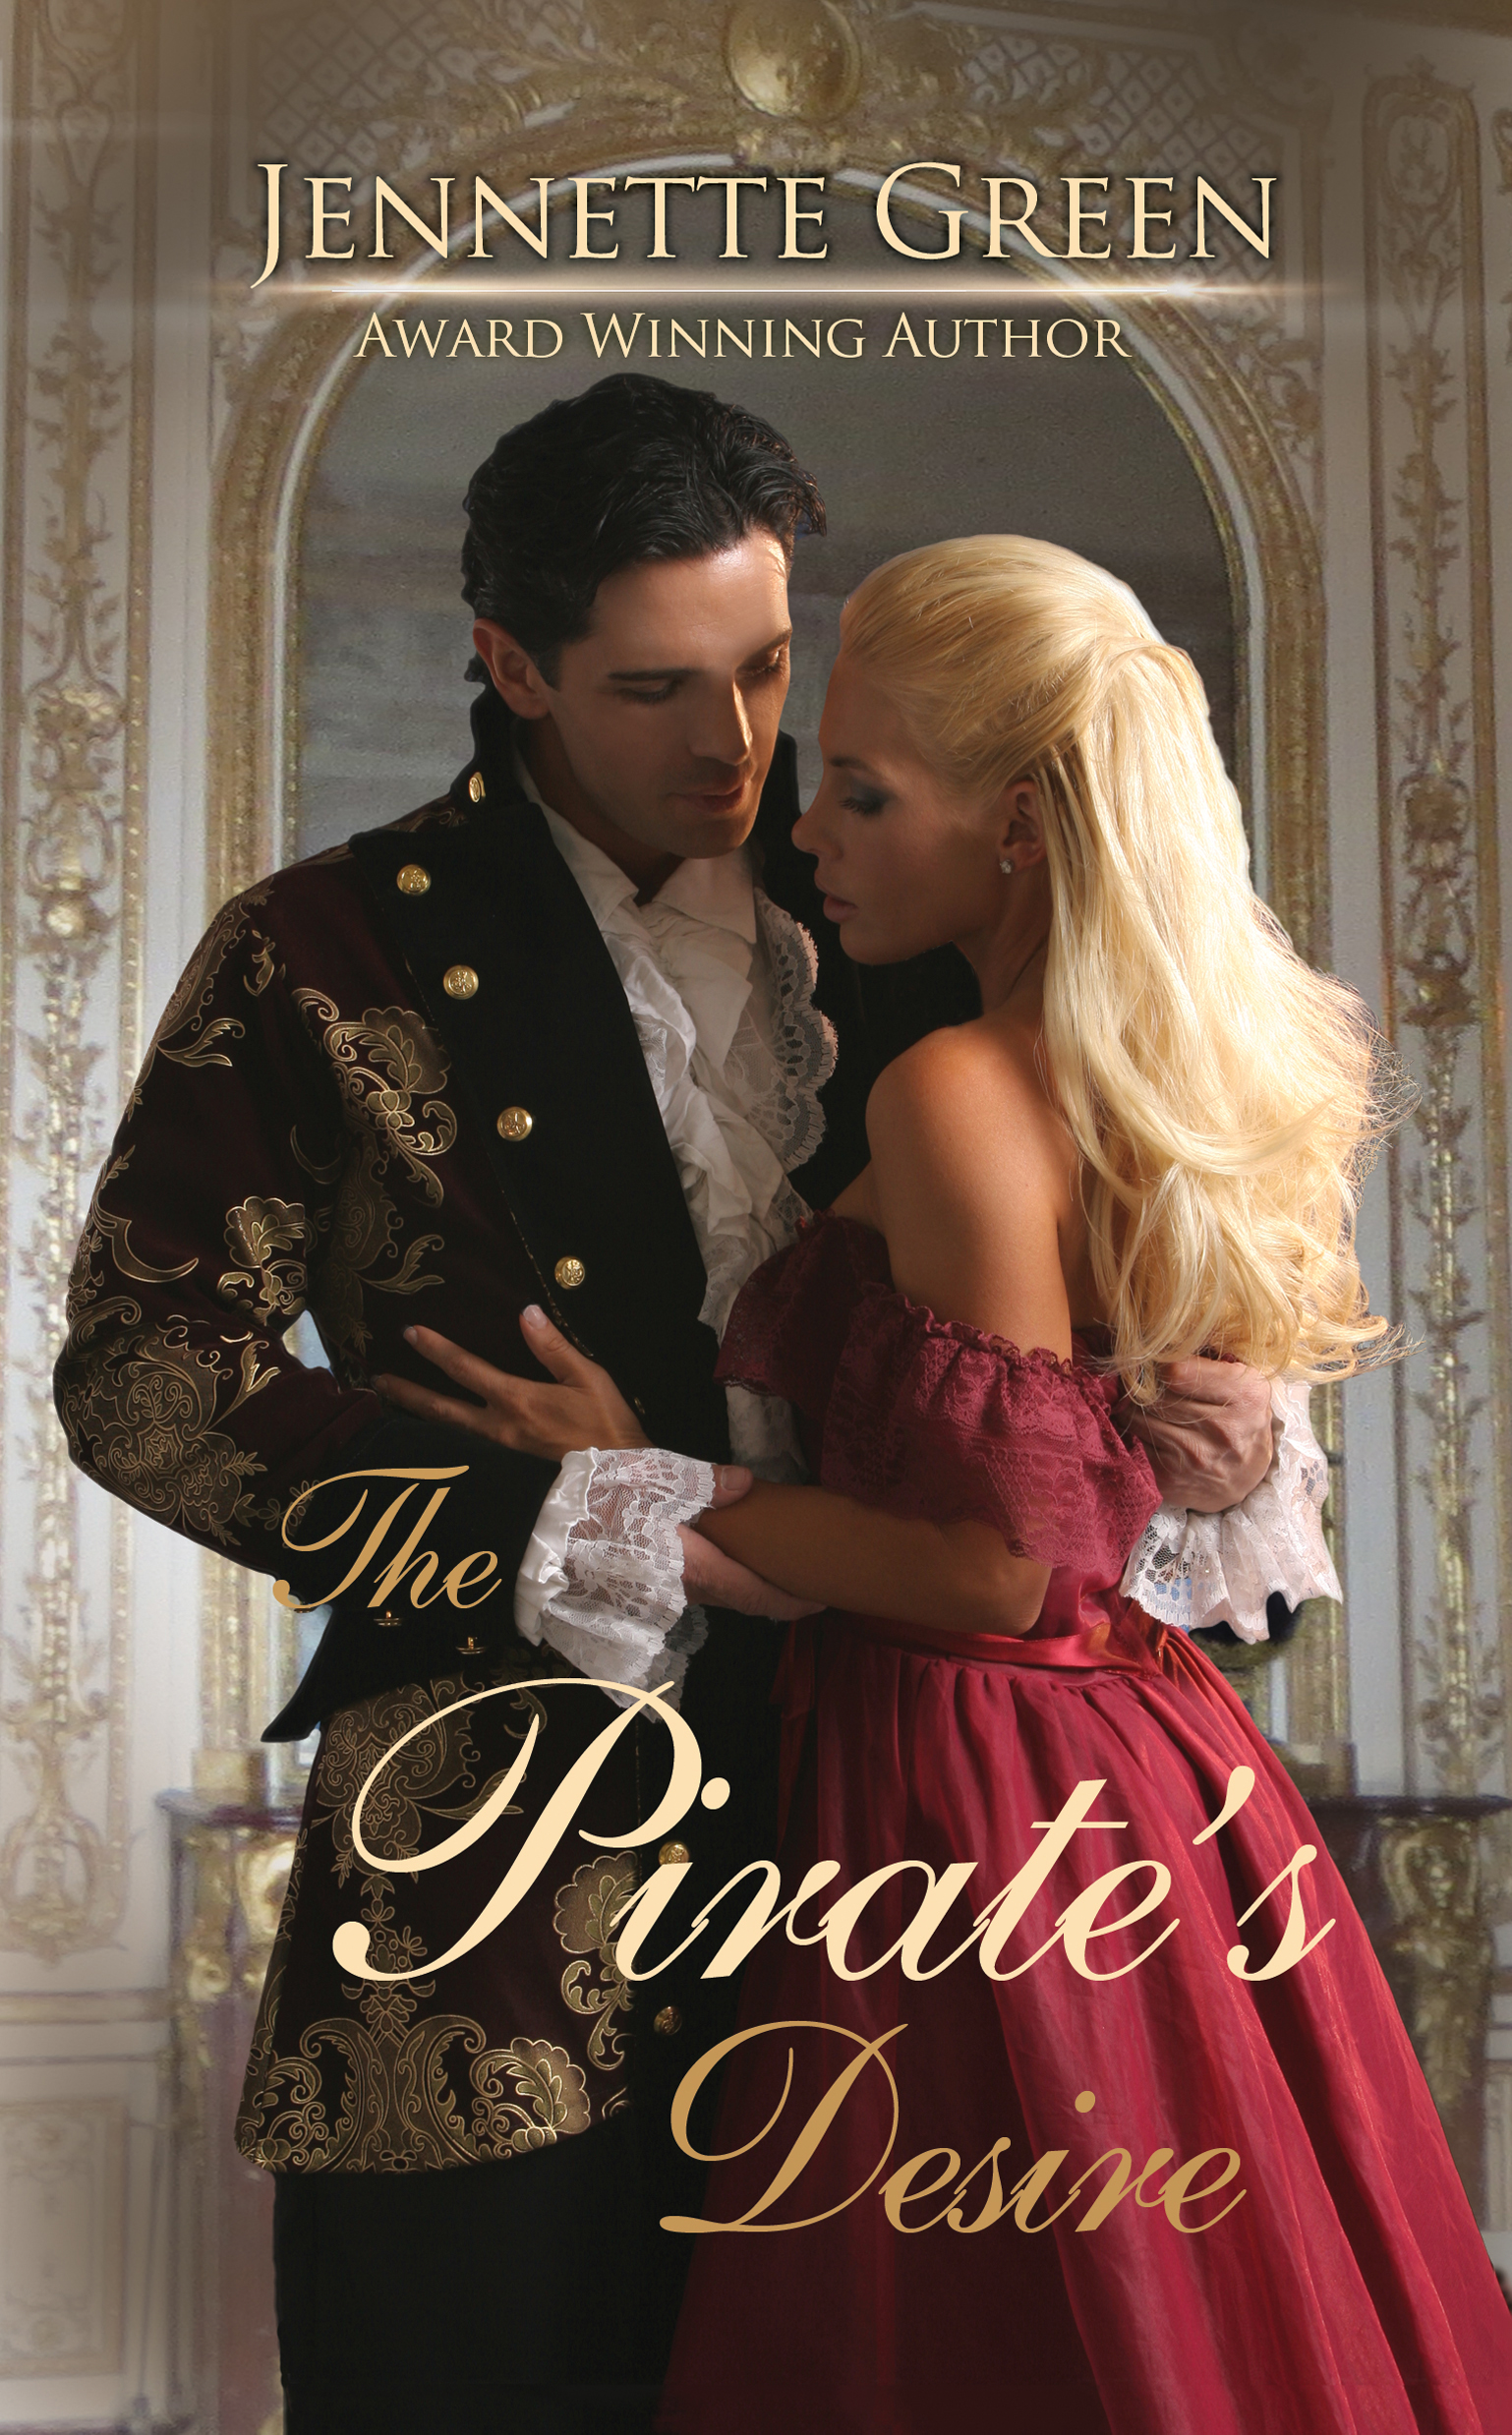 Romance Book Cover Pictures : The pirate s desire jennette green romance author